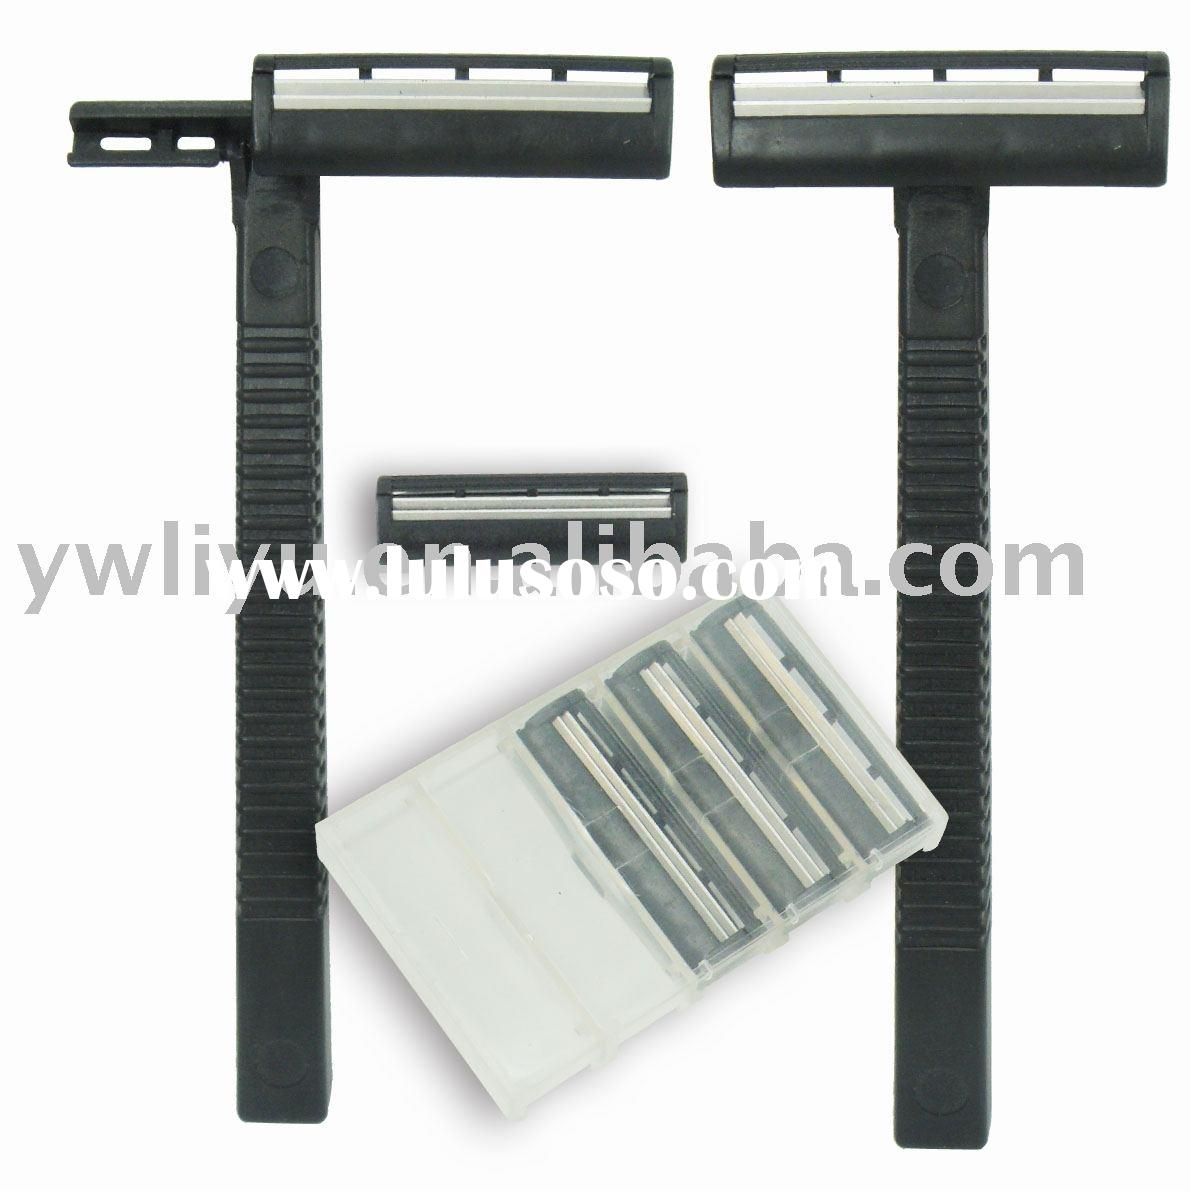 Triple Blade razor,high quality razor,replaced able razor blade ,fushion power razor